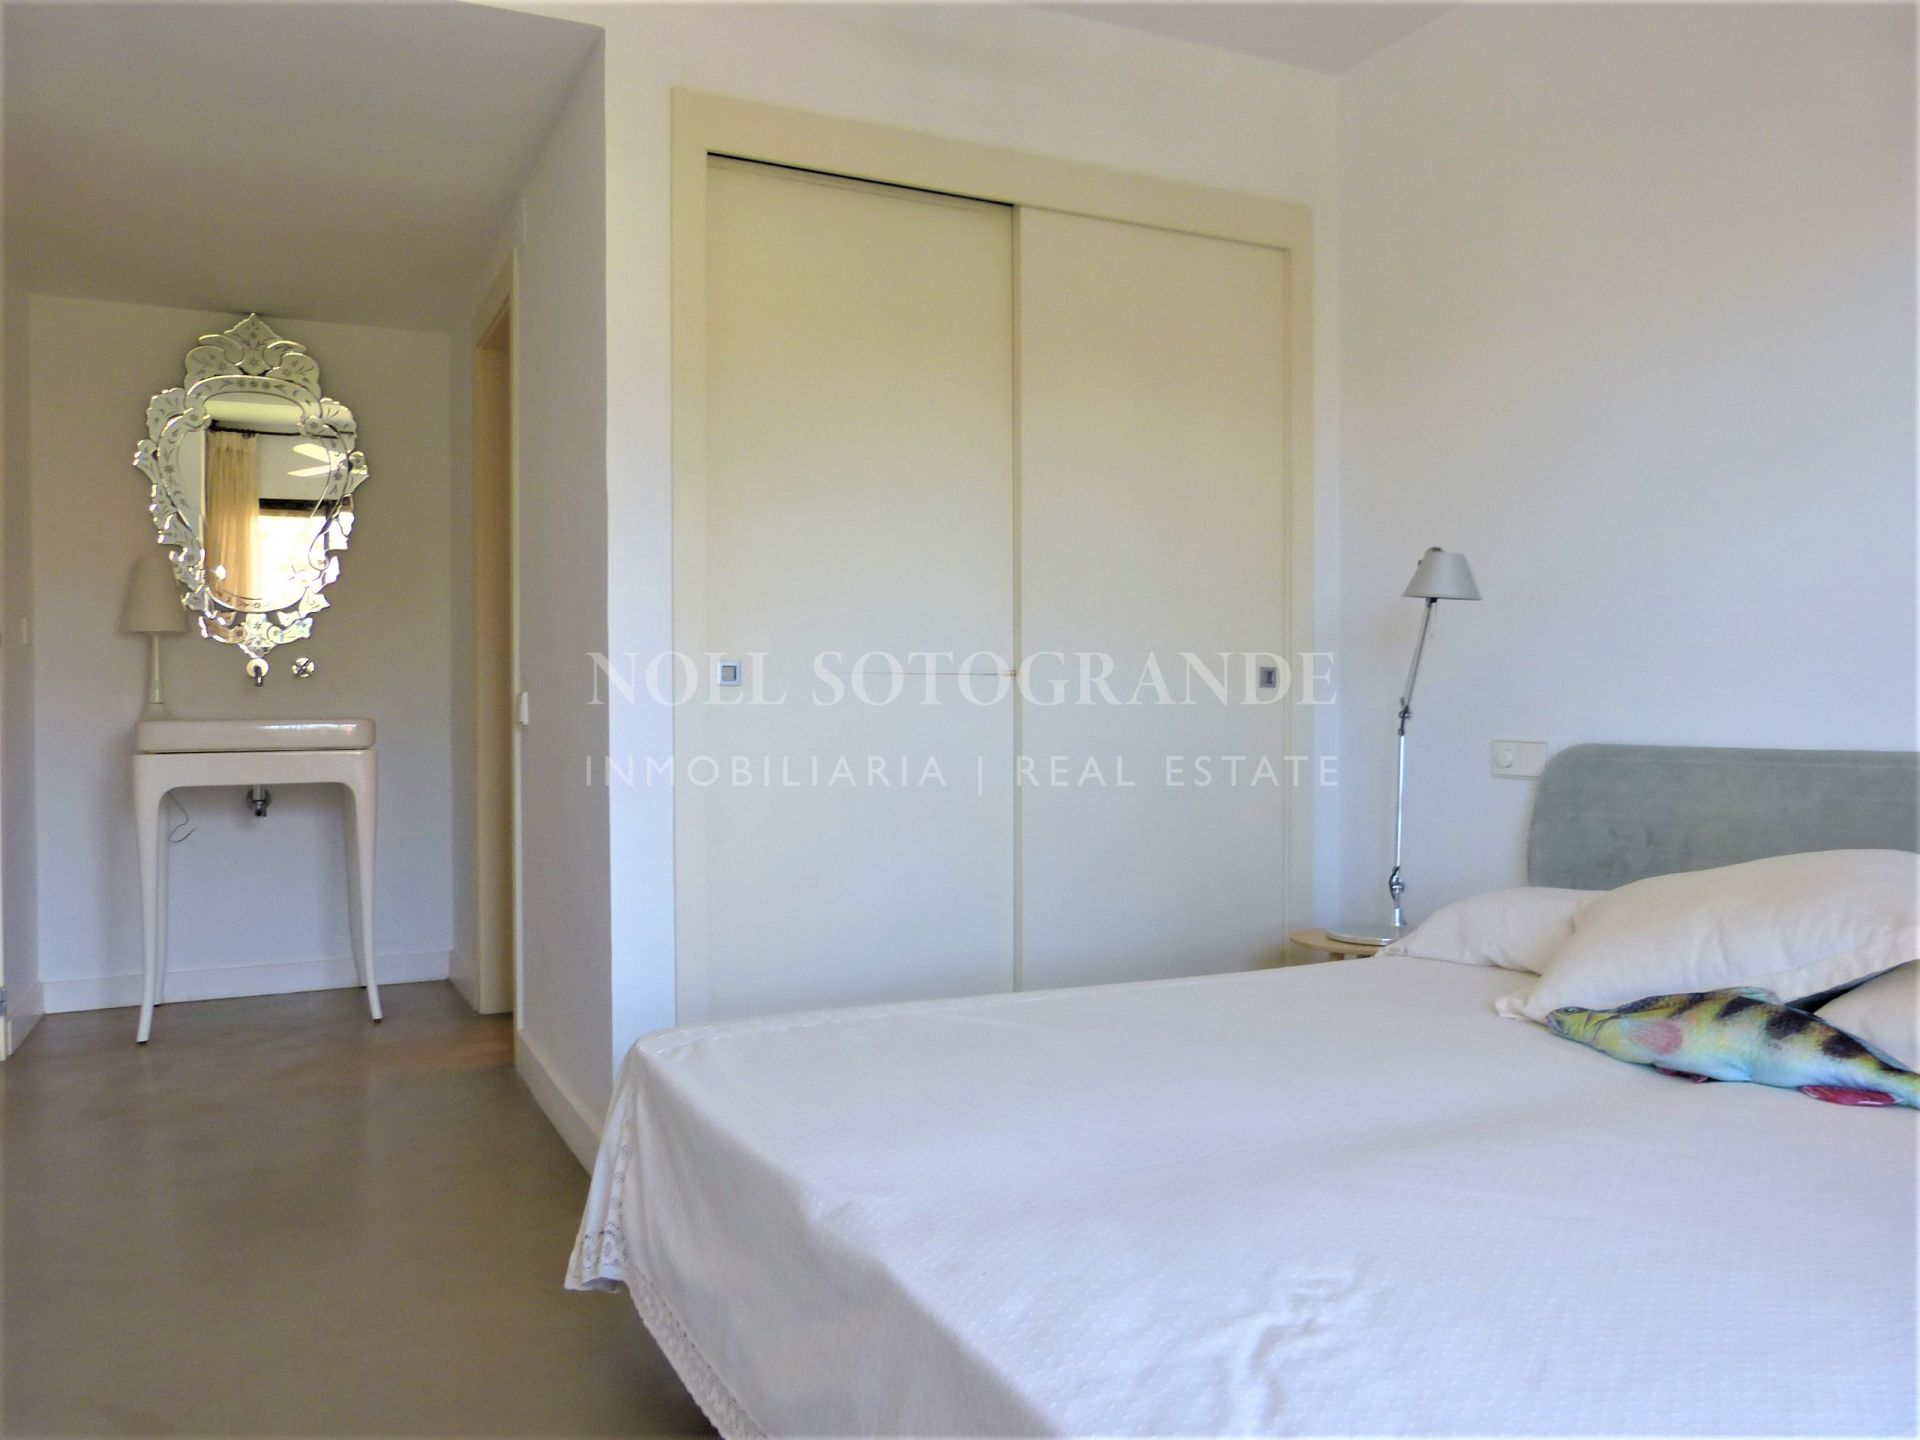 Penthouse for sale in Sotogrande - 90 meters from the beach